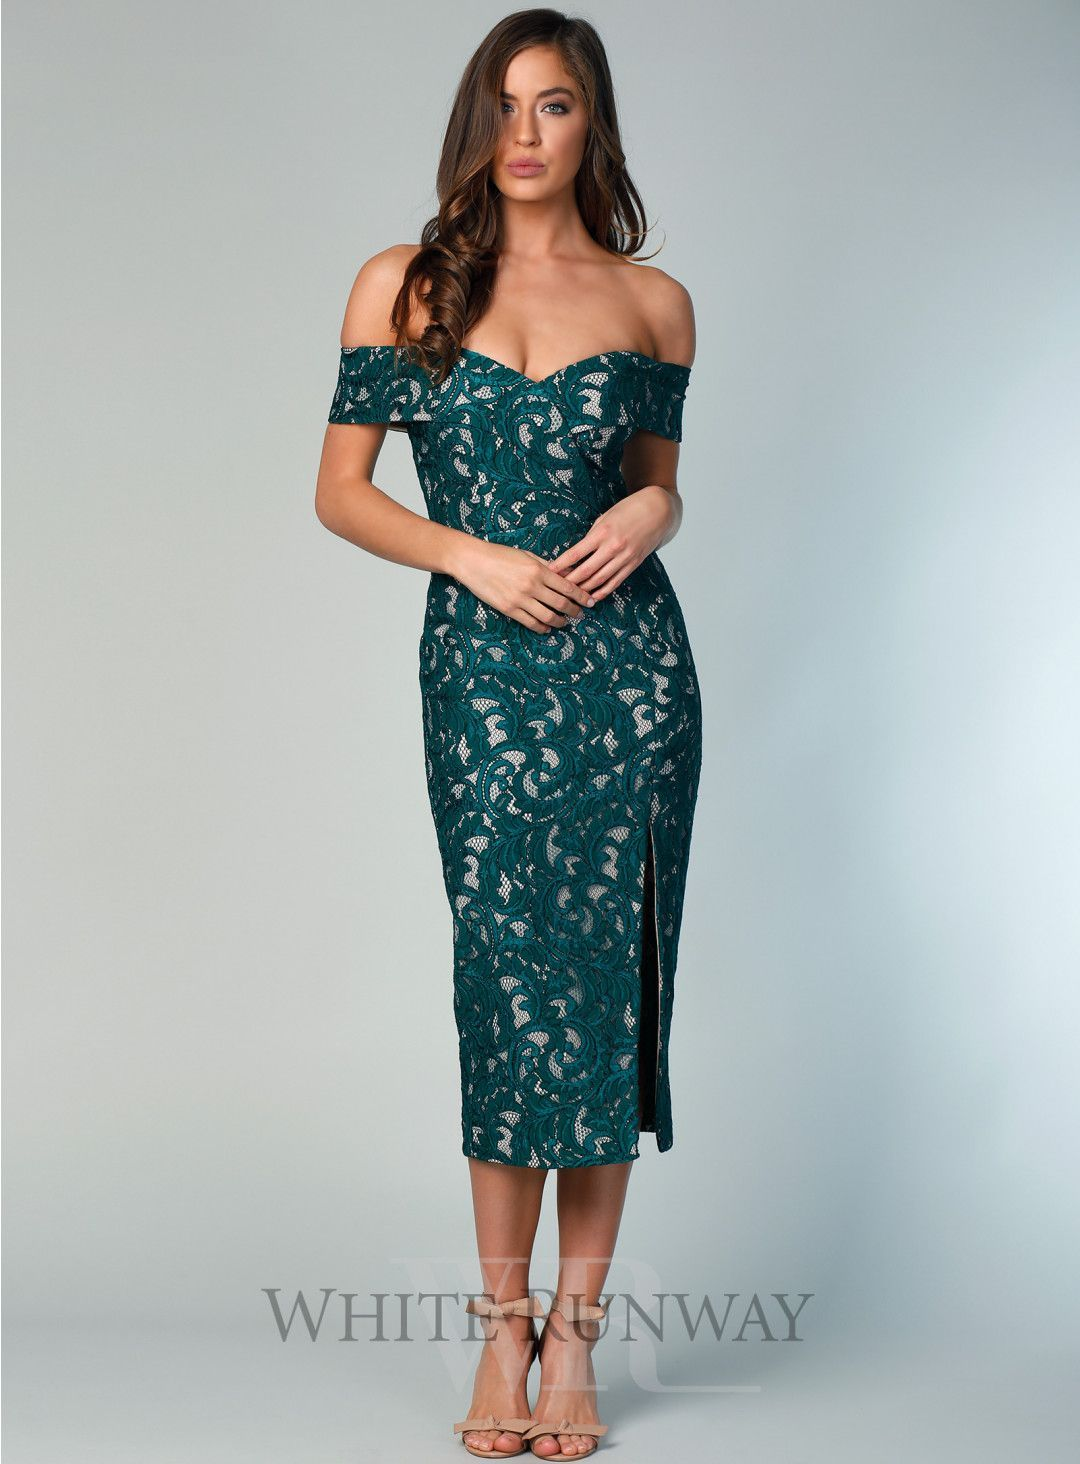 a47764efa577 Gia Lace Cocktail Dress. A beautiful midi by Samantha Rose. A lace off  shoulder style featuring crossover detailing on the bust and a side split  in the ...